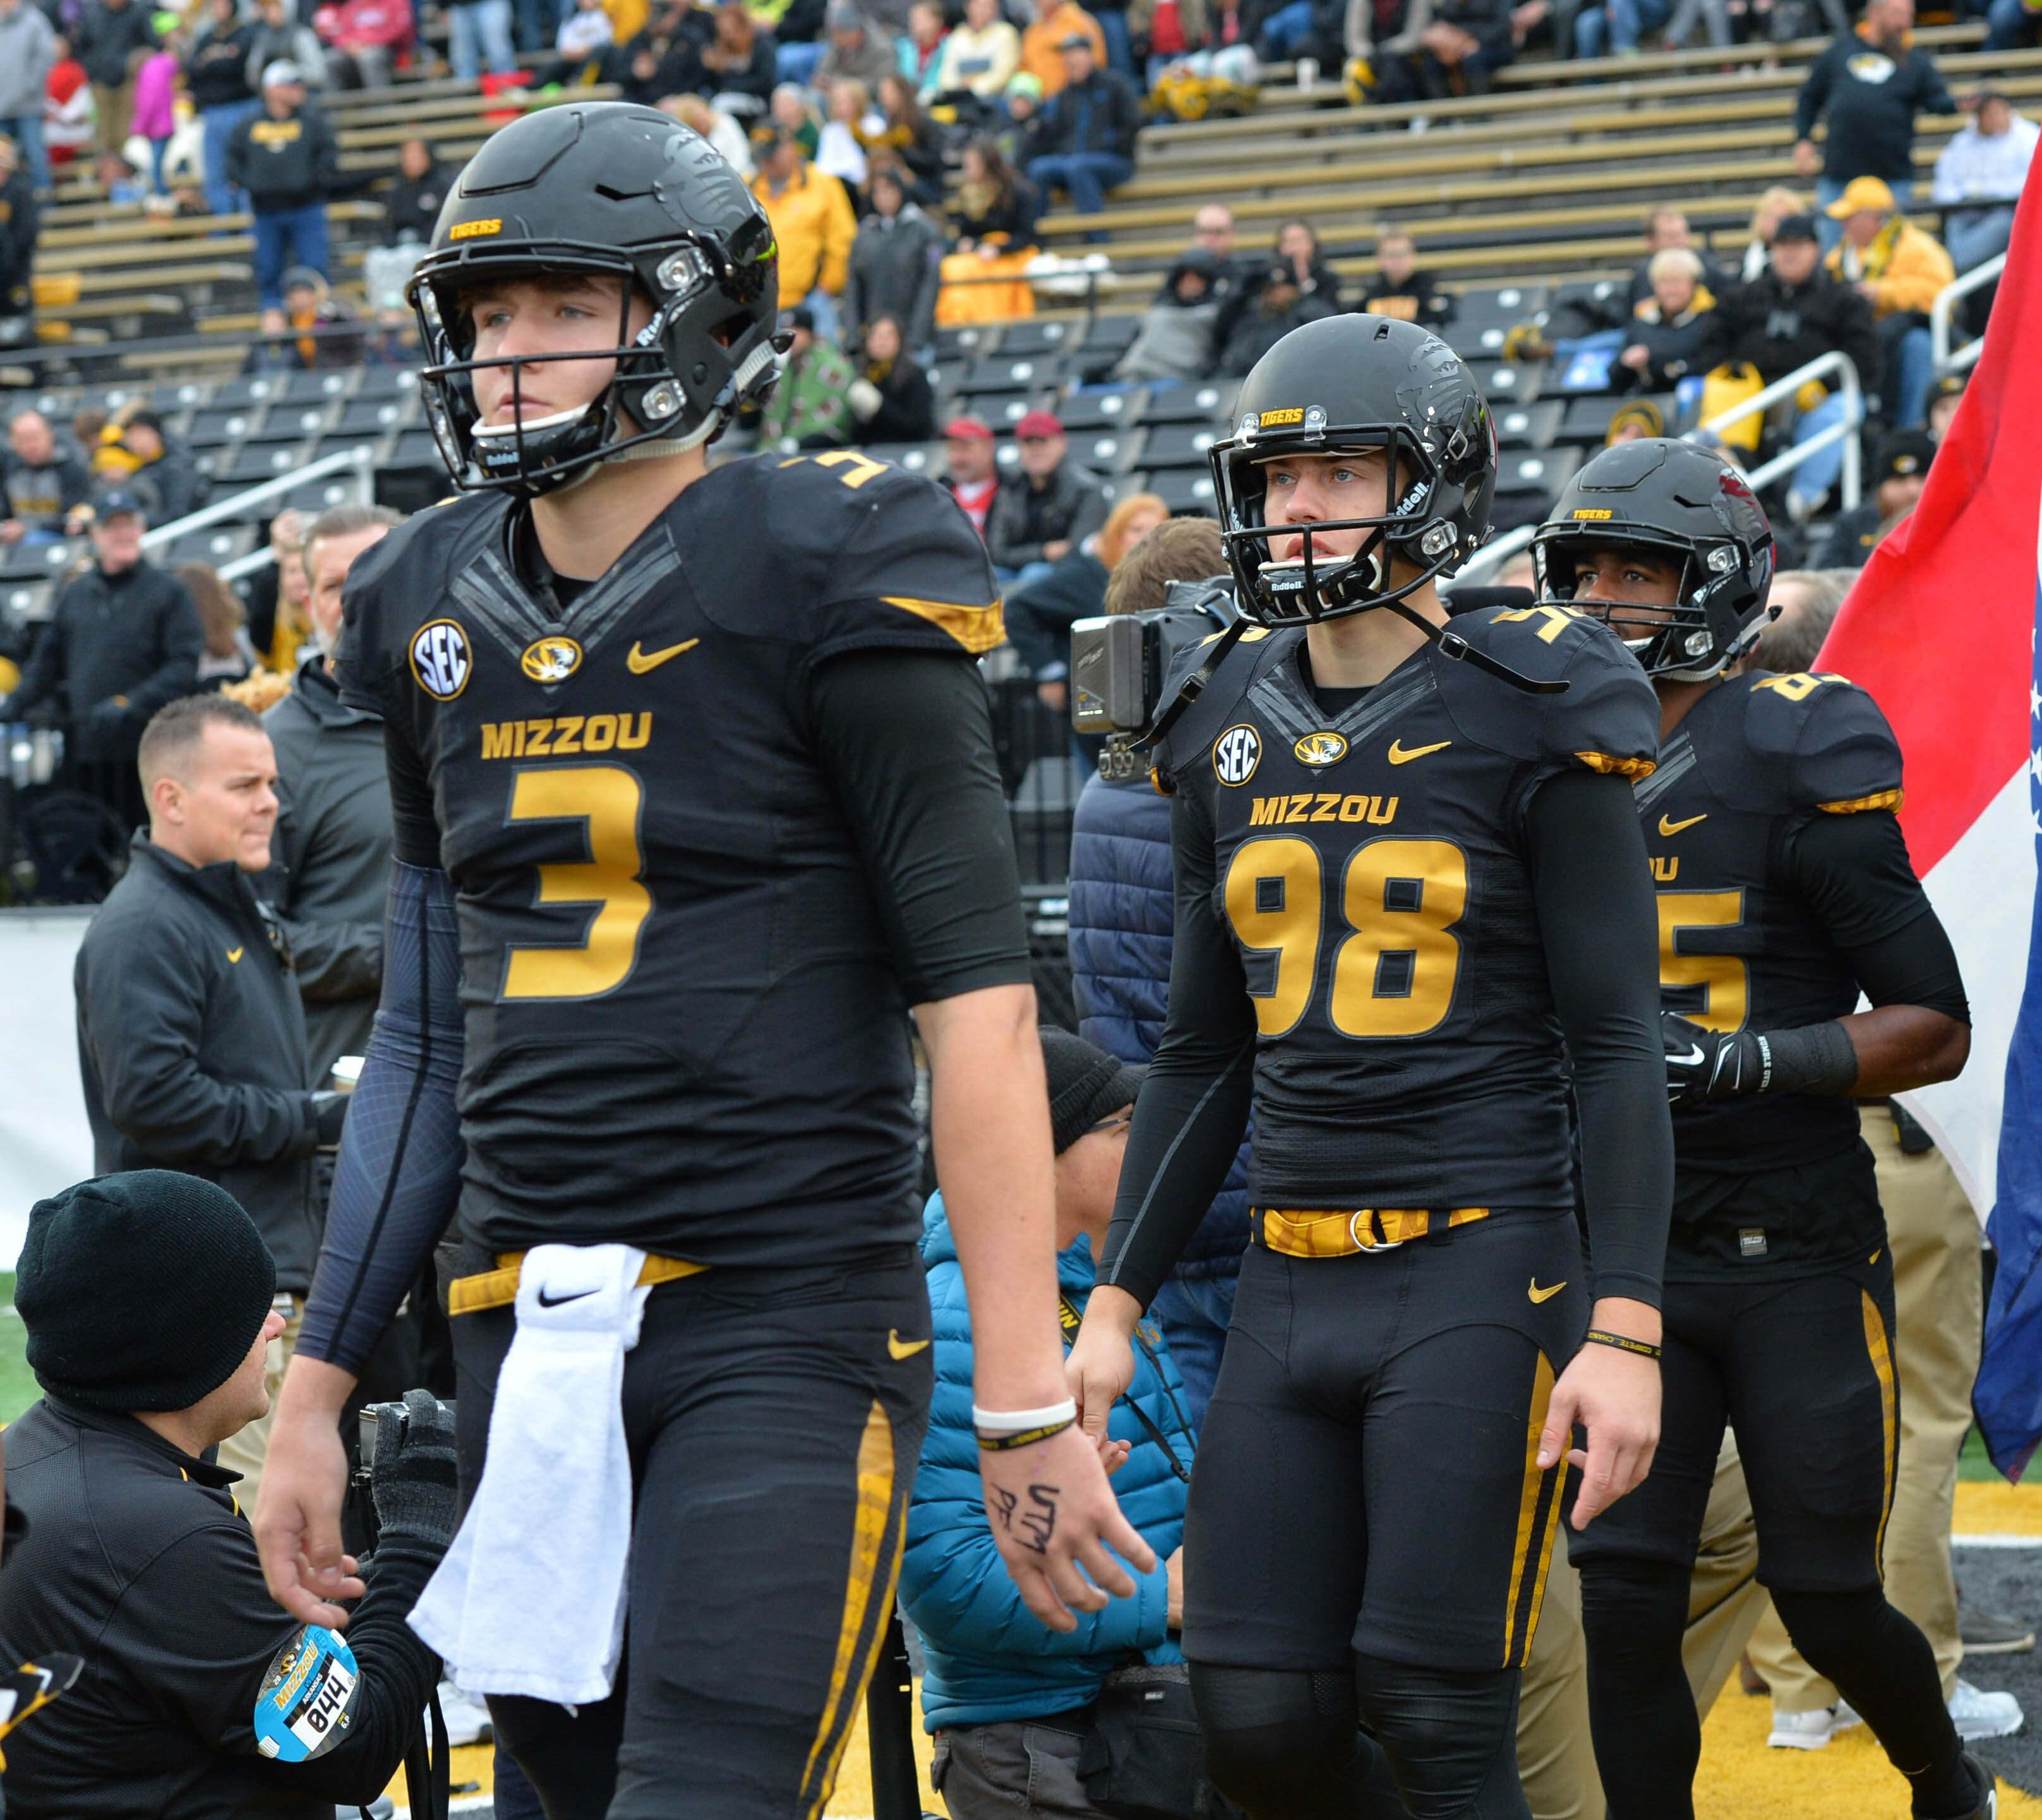 Missouri Football University To Rent Out Dorm Rooms At